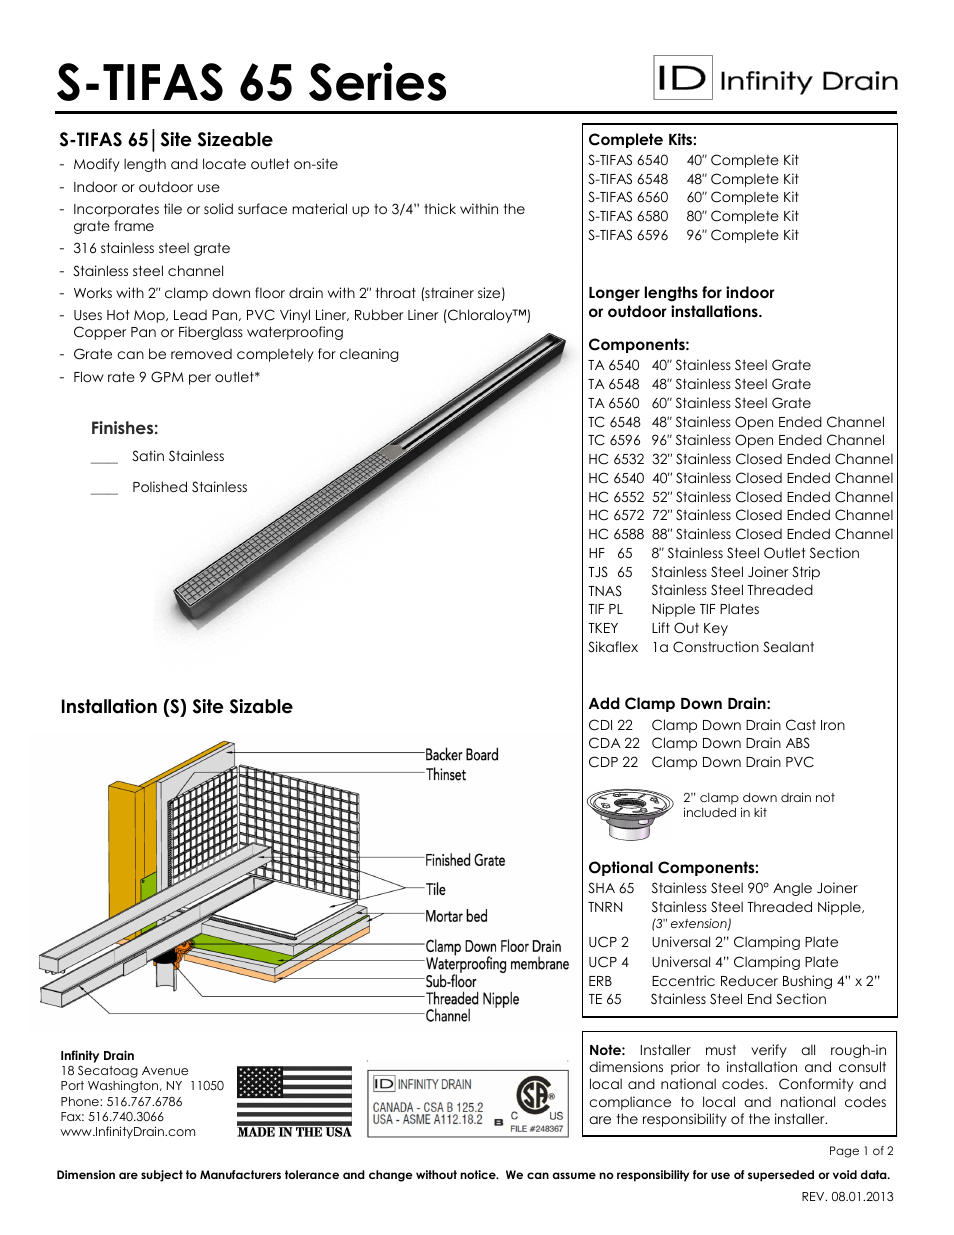 Infinity Drain S TIFAS 6548 Series Submittal Sheet User Manual